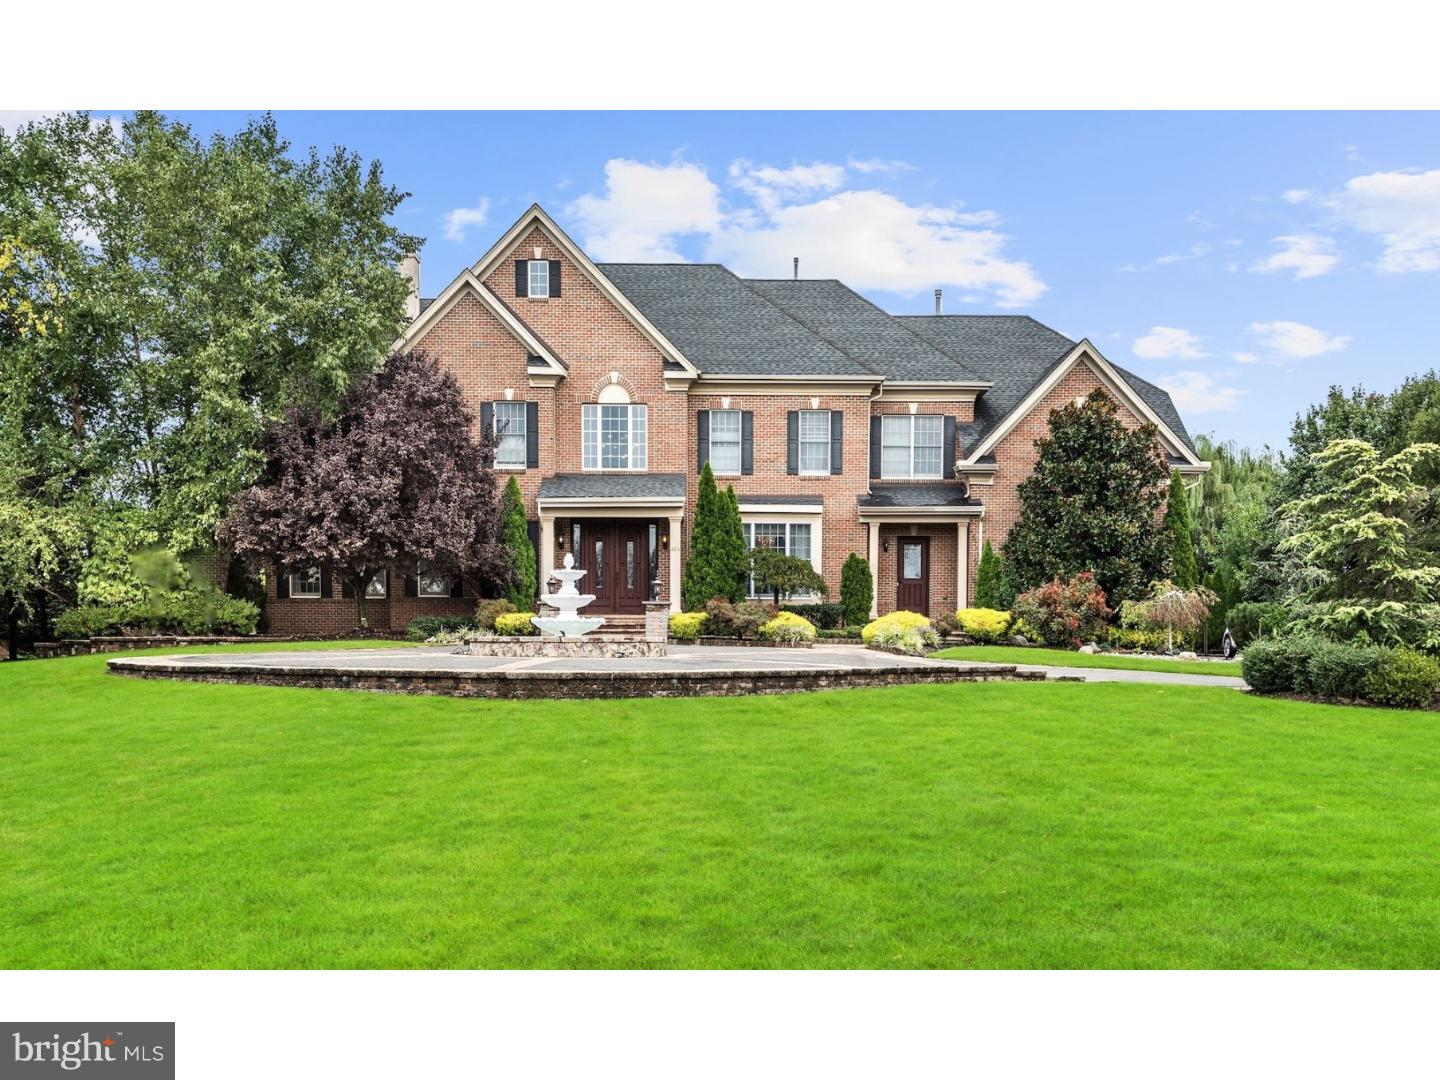 404 SALEM CROSSING ROAD, MOORESTOWN, NJ 08057